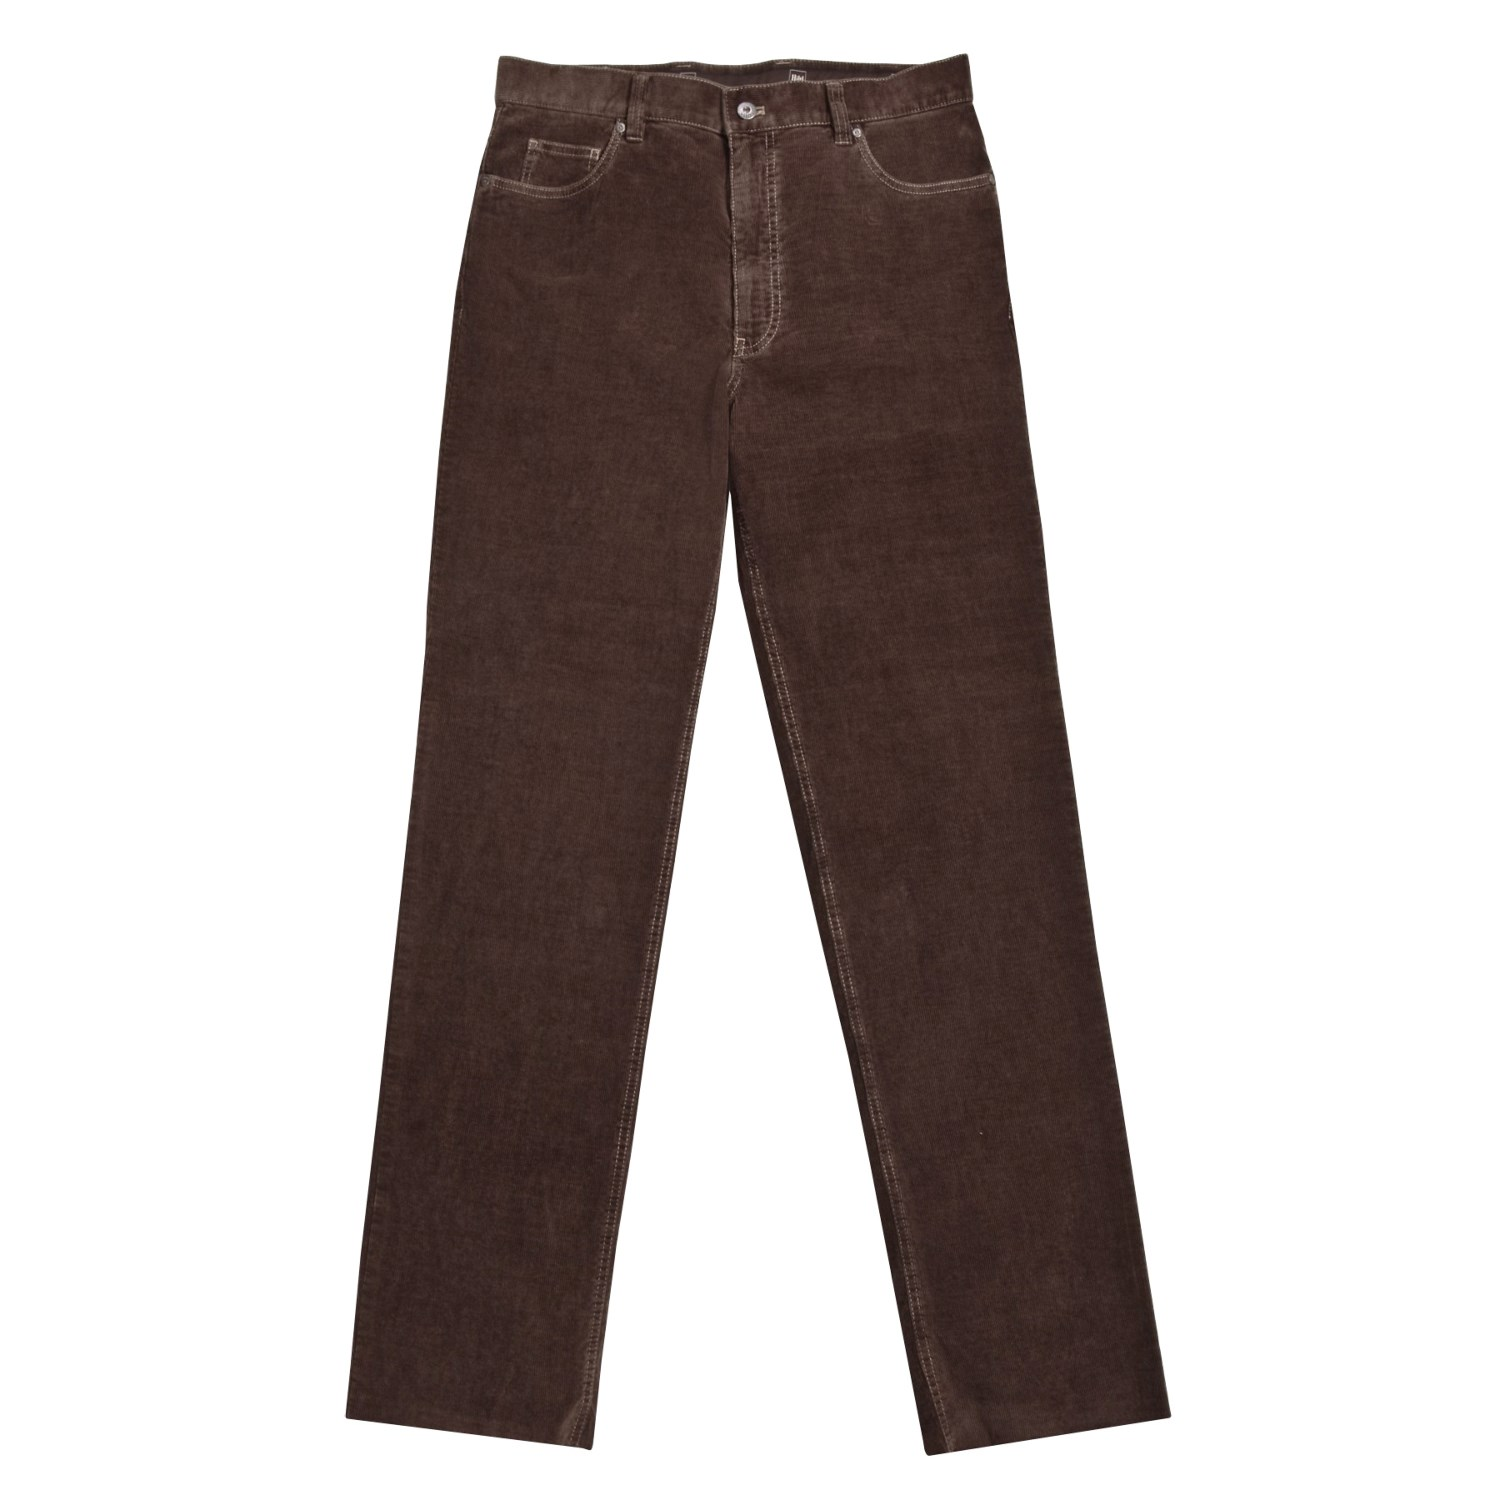 Stretch Corduroy Pant is rated out of 5 by Rated 4 out of 5 by billg3 from no comfort oreign clothing mfg. are cutting down on sizes ie, they are making clothes smaller than the size listed, which results in upset consumers/5(16).